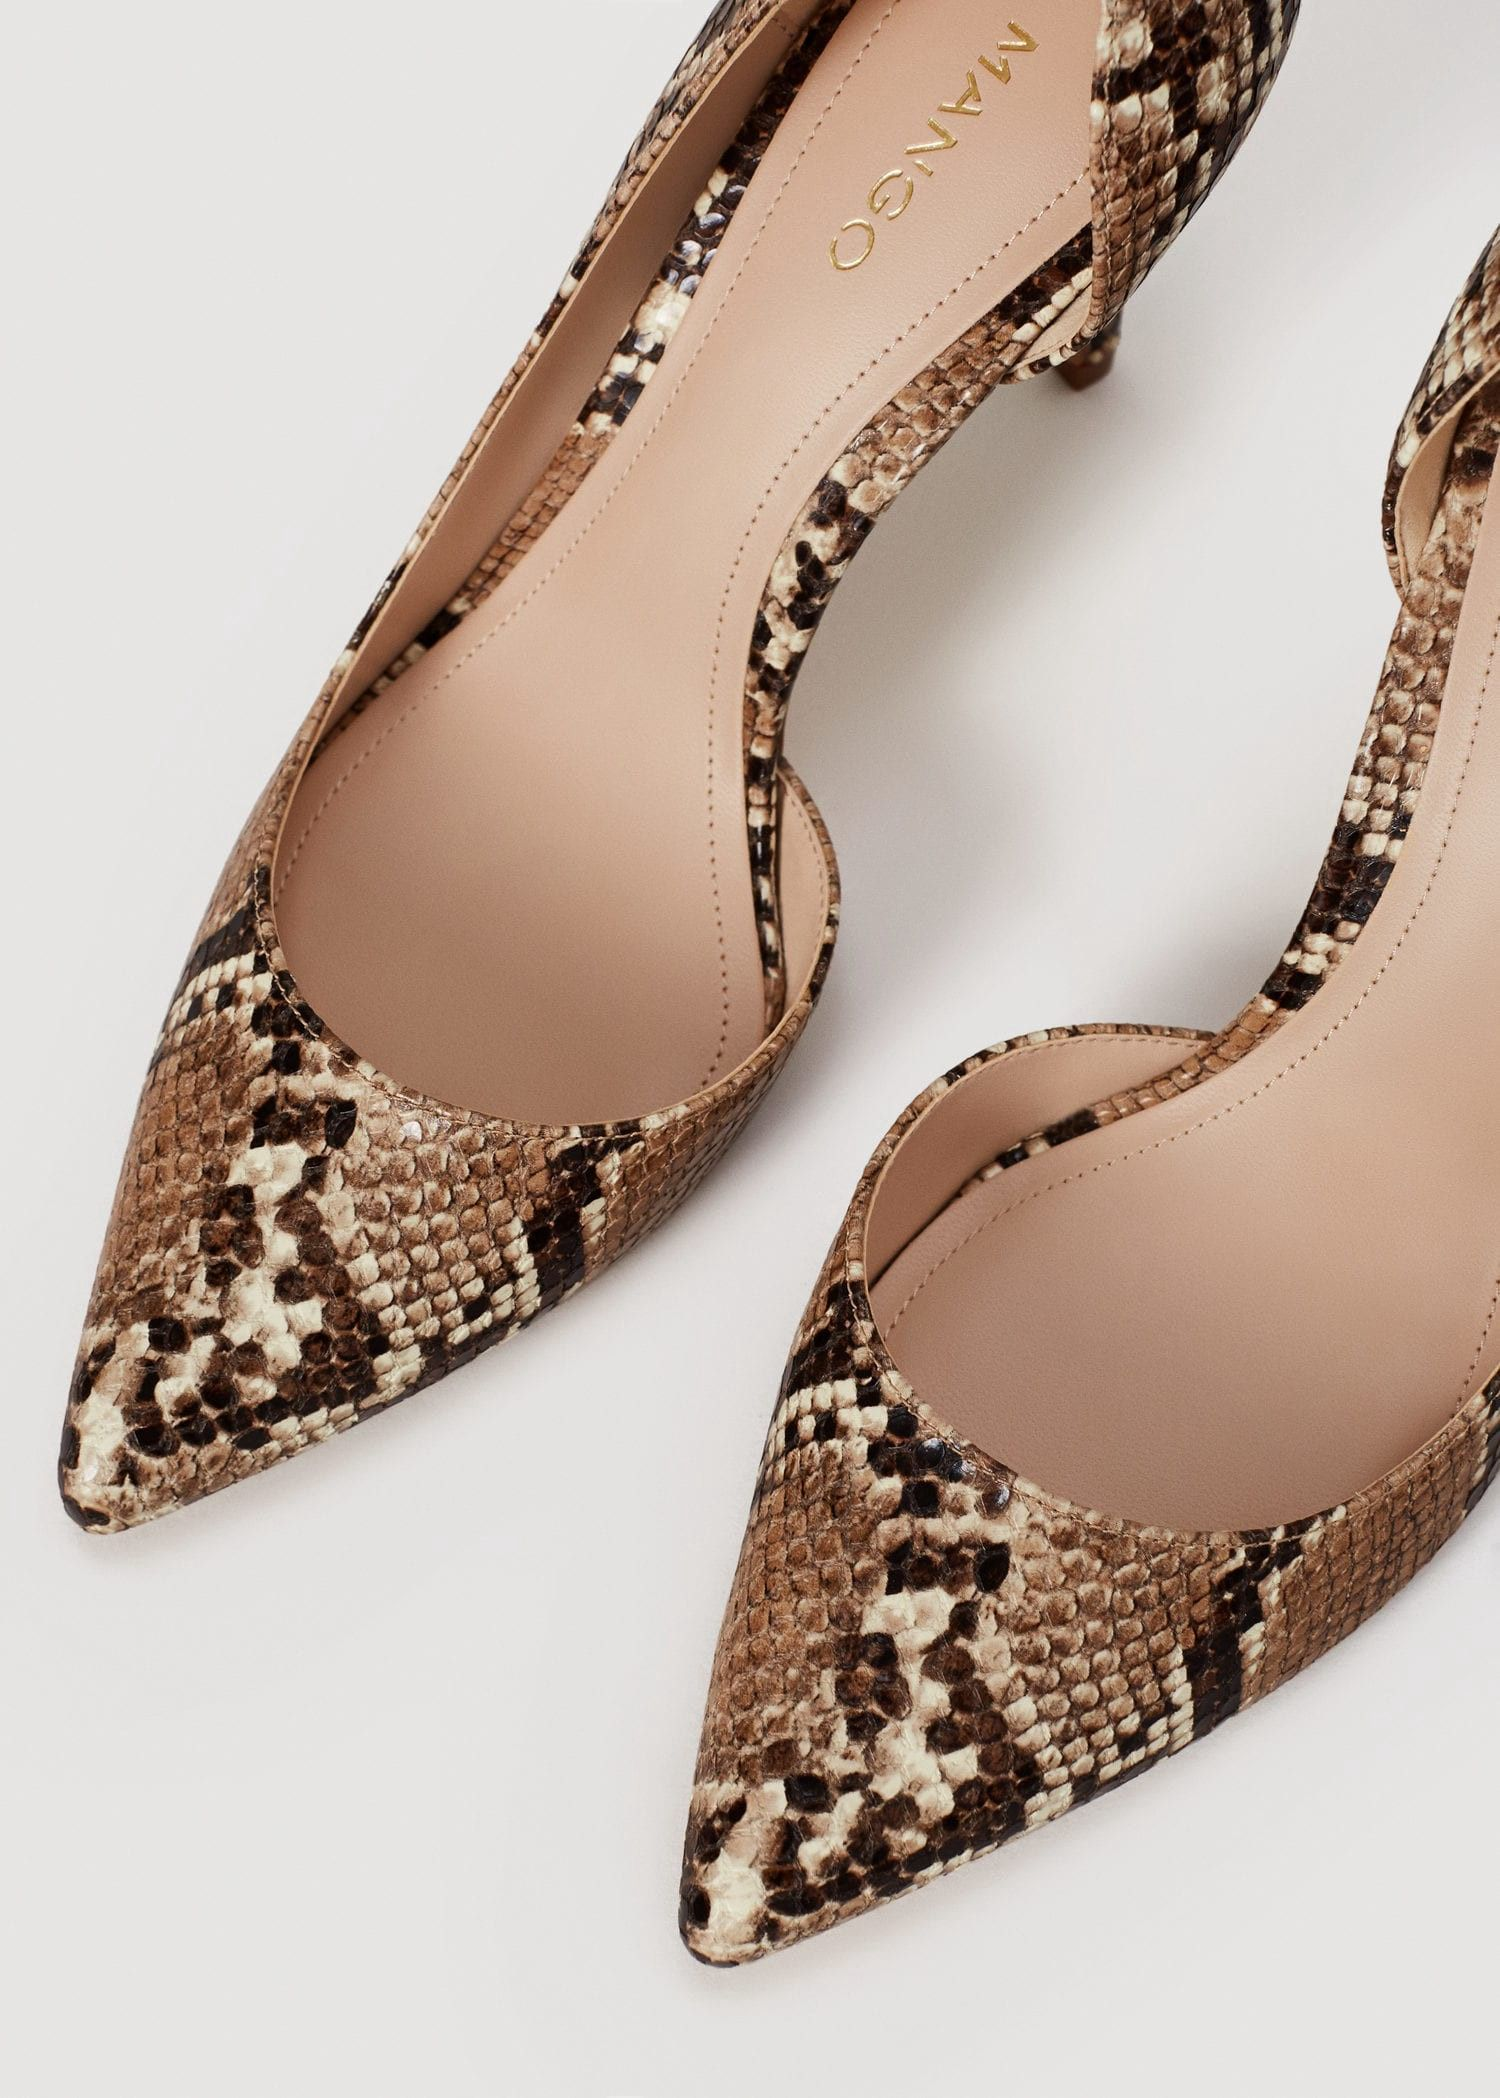 19b135cdc2 Mango Snake-Finish Pumps - 6 | Products | Women's pumps, Heels, Shoes